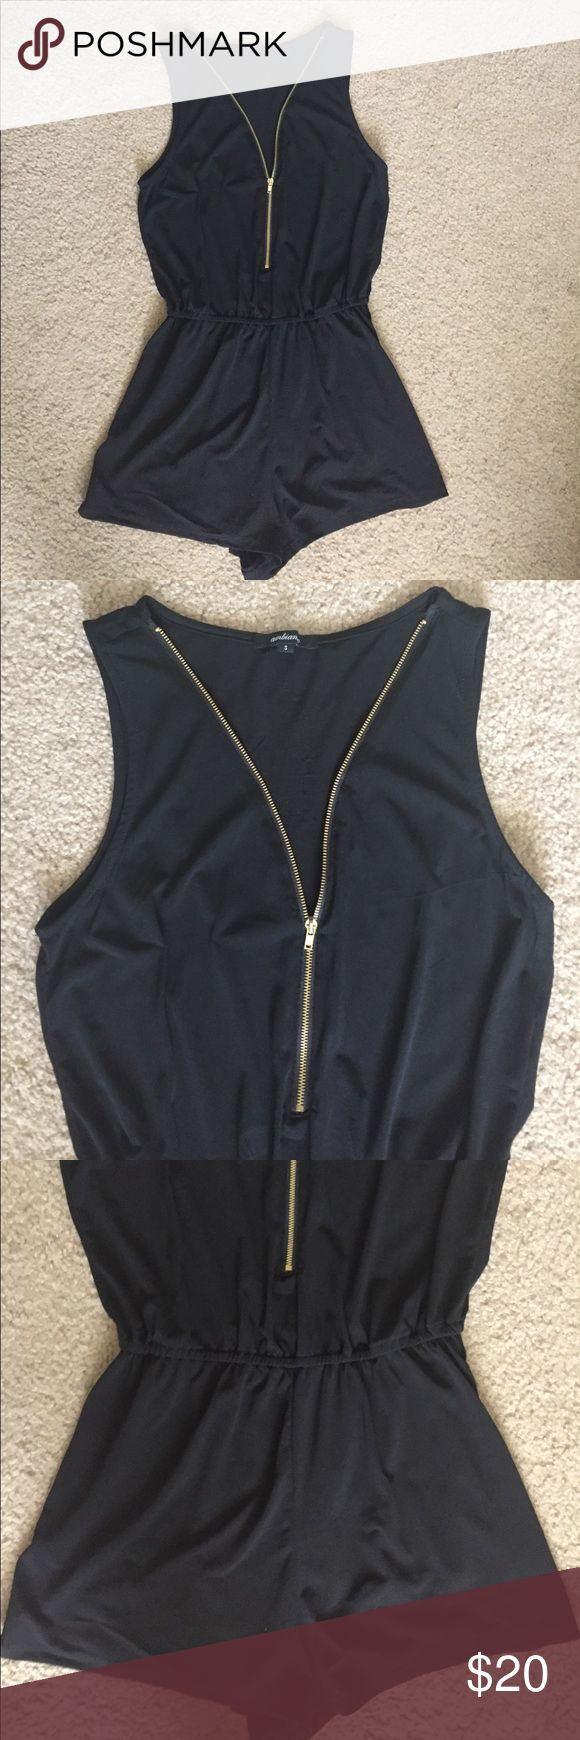 Black zip up romper Gently used. In good condition! Has a gold zipper in front. Size Small. Material is 95% Polyester and 5% Spandex. Ambiance Apparel Dresses